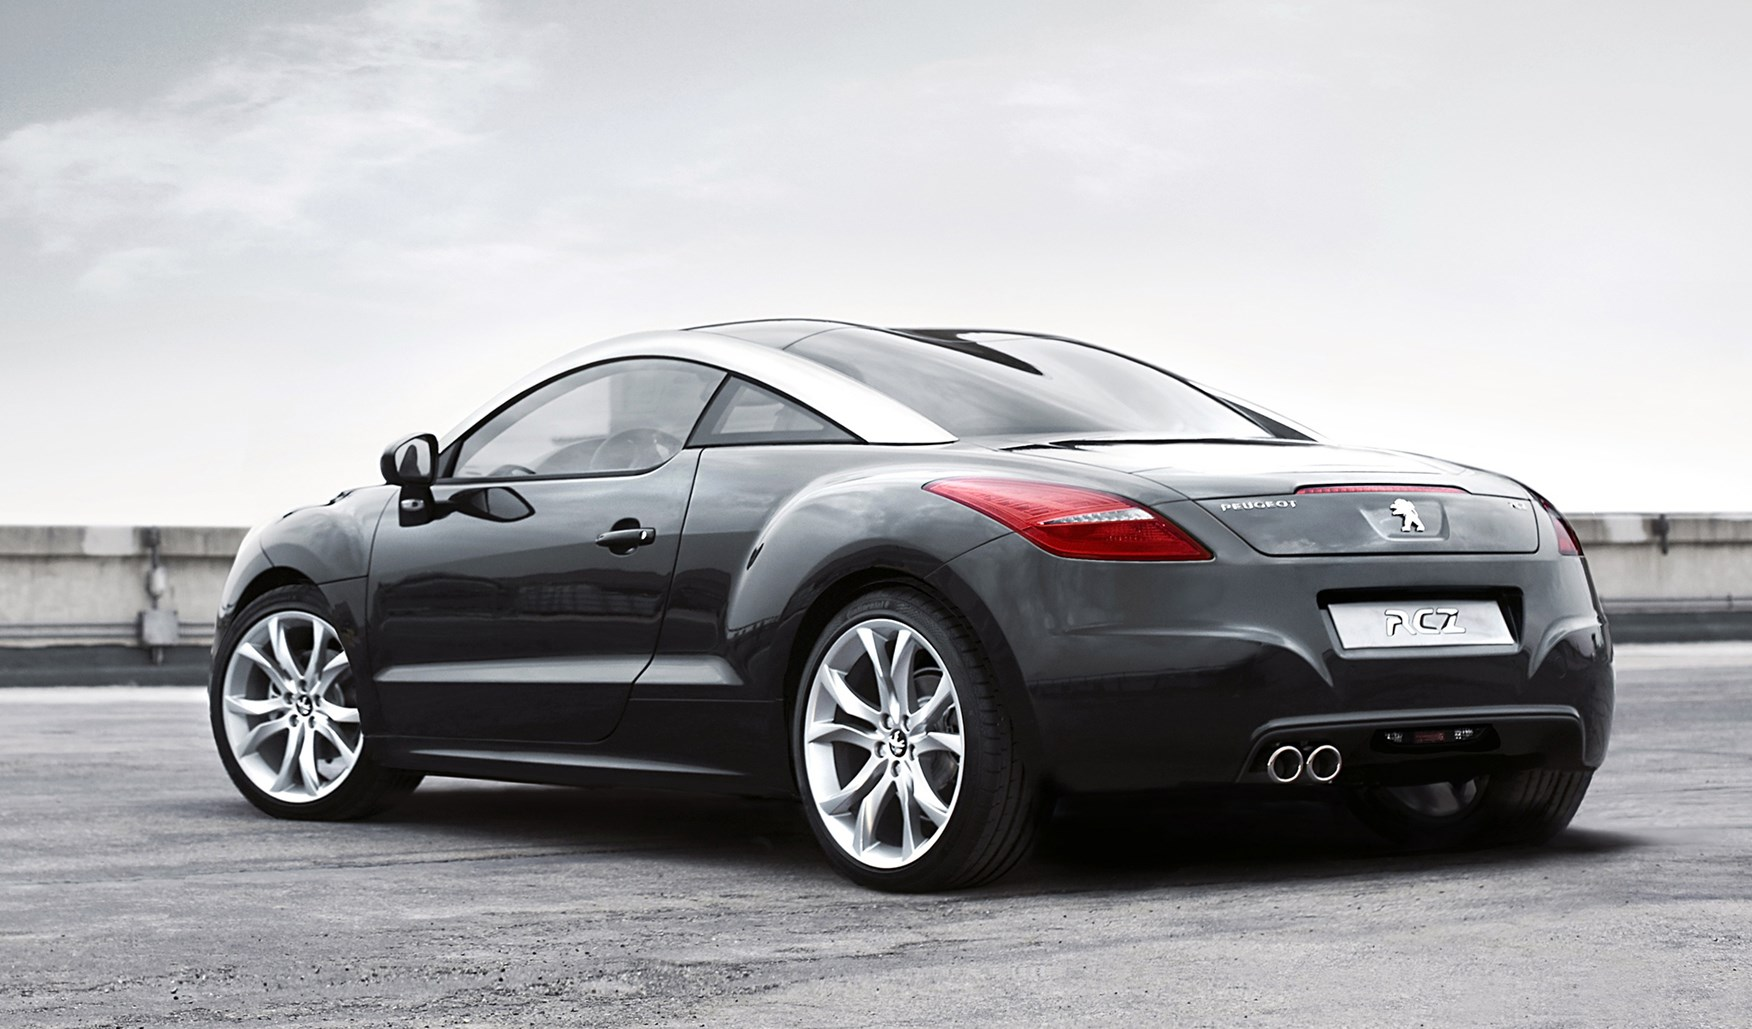 Peugeot Rcz Coupe Review 2010 2015 Parkers